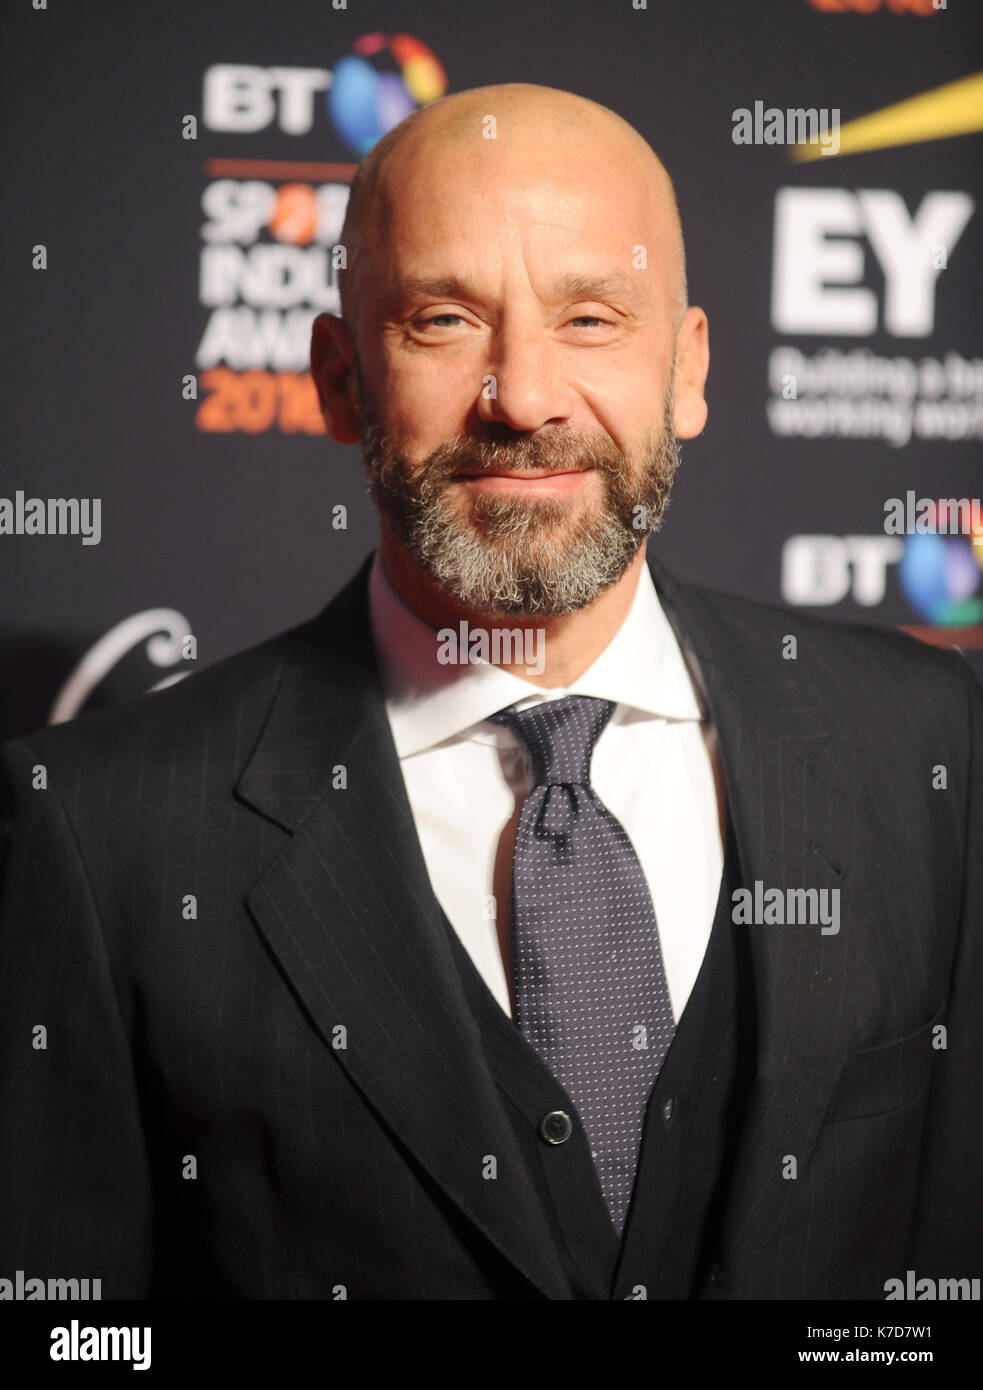 Gianluca Vialli Stock Photos Amp Gianluca Vialli Stock Images Alamy